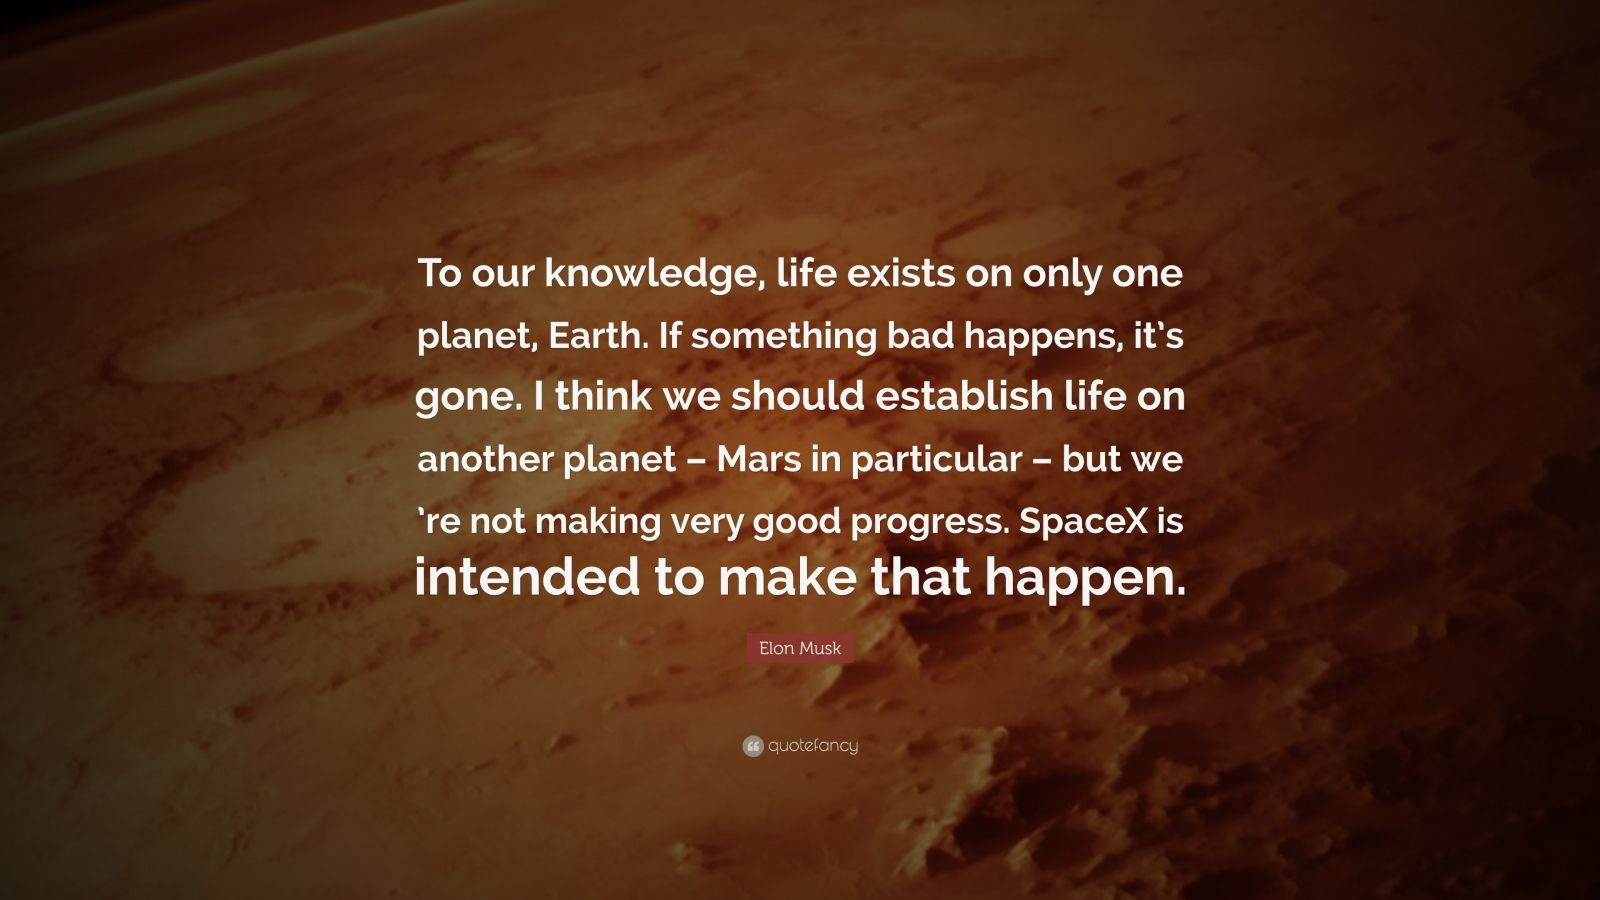 "Elon Musk Quote: ""To our knowledge, life exists on only one planet, Earth. If something bad happens, it's gone. I think we should establish life on another planet – Mars in particular – but we 're not making very good progress. SpaceX is intended to make that happen."""